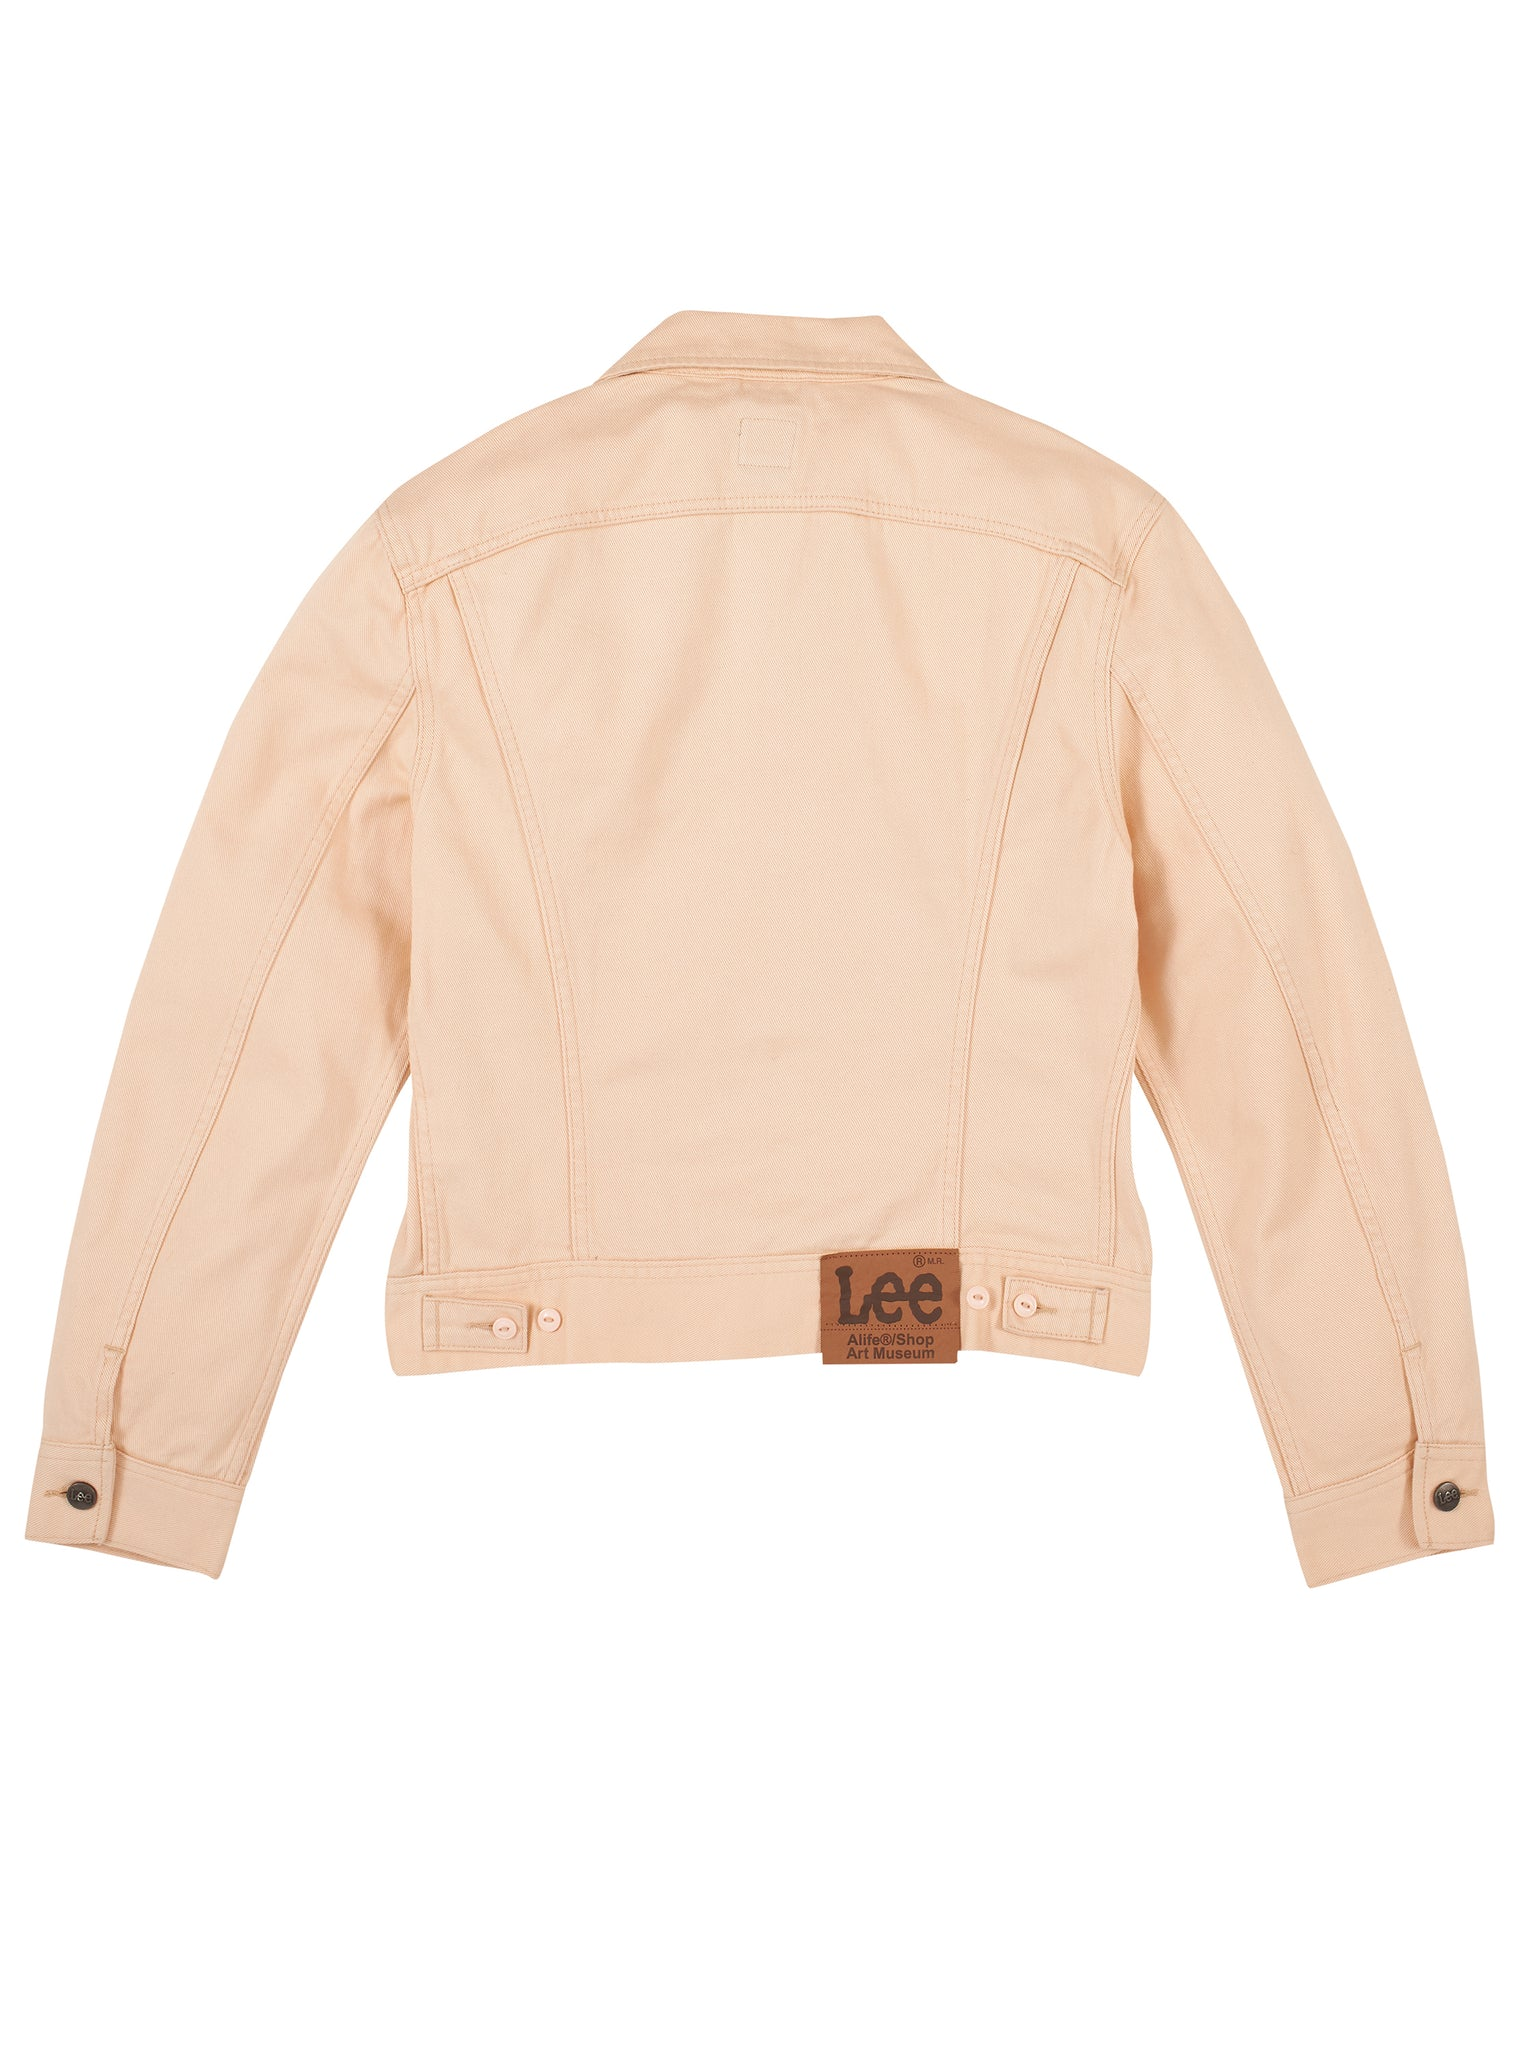 Alife/Lee Colored Cotton Twill Jacket in Beige back